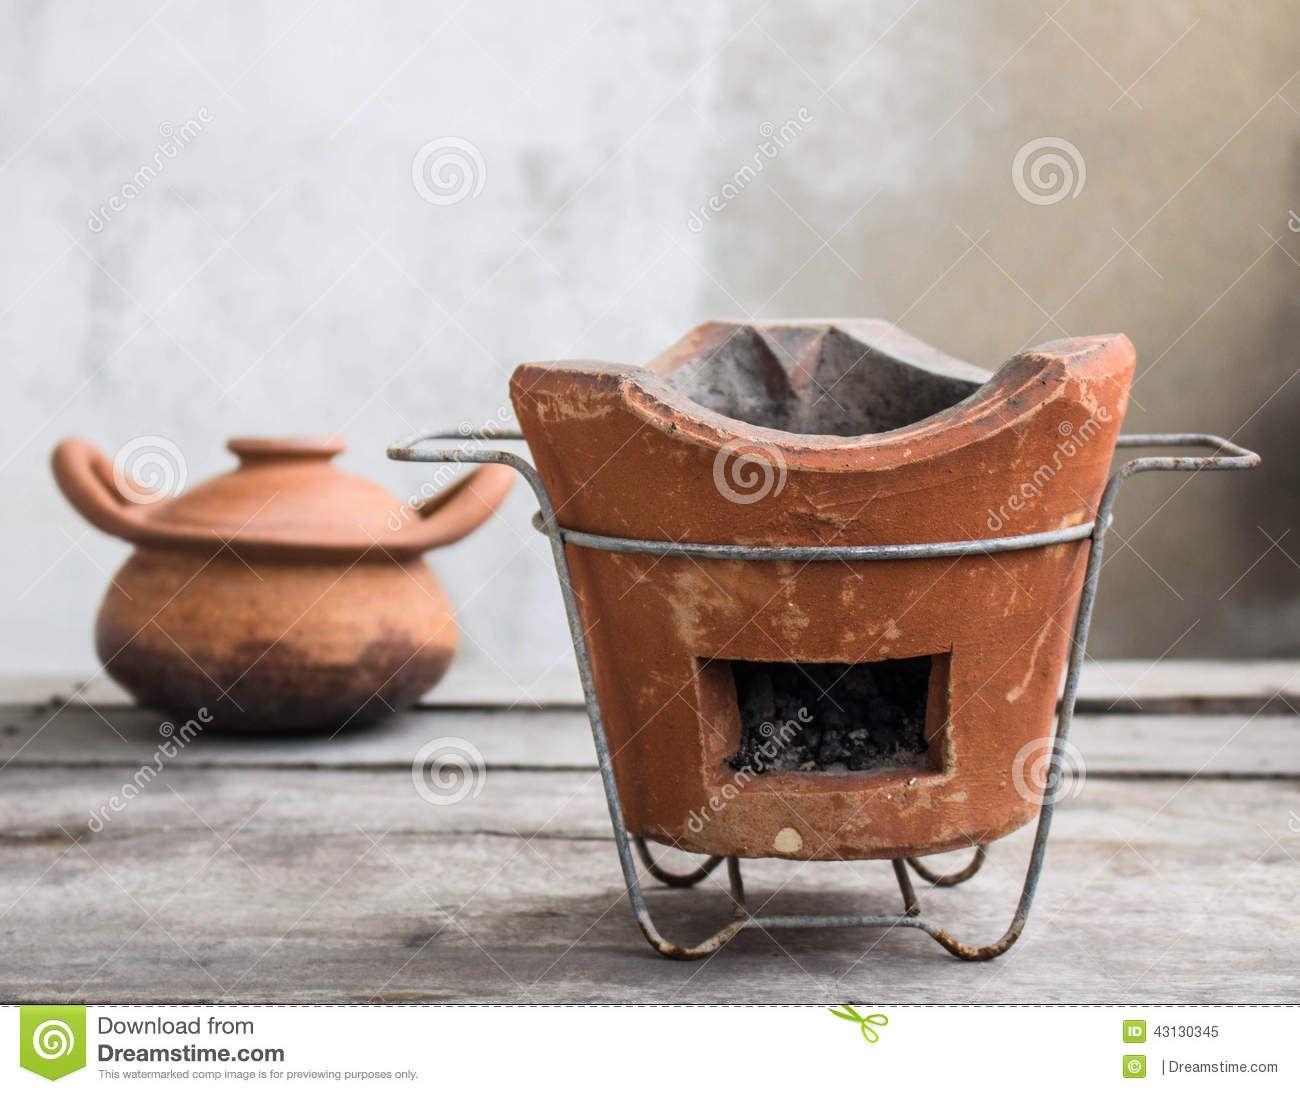 Clay Stove Stock Photos Images Pictures 807 Images Wood Stove Cooking Clay Oven Ceramic Grill,How To Clean Fish Tank Filter Sponge